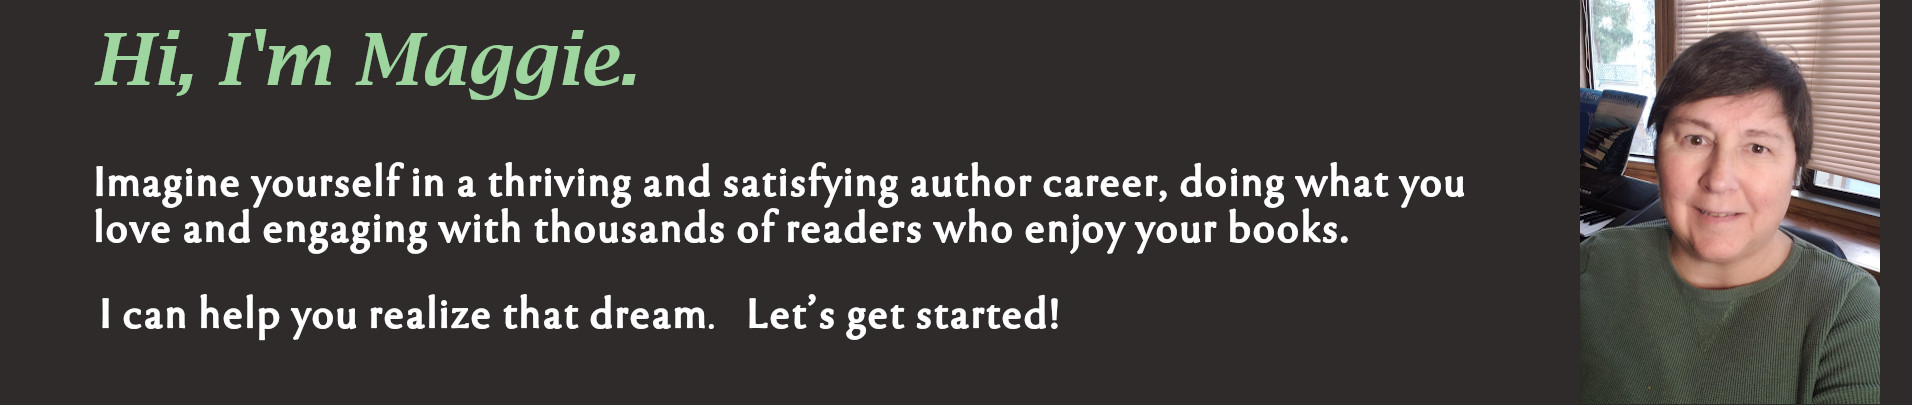 banner with casual headshot of maggie lynch. Banner reads: Hi, I'm Maggie. Imagine yourself in a thriving and satisfying author career, doing what you love and engaging with thousands of readers who enjoy your books. I can help you realize that dream. Let's get started!